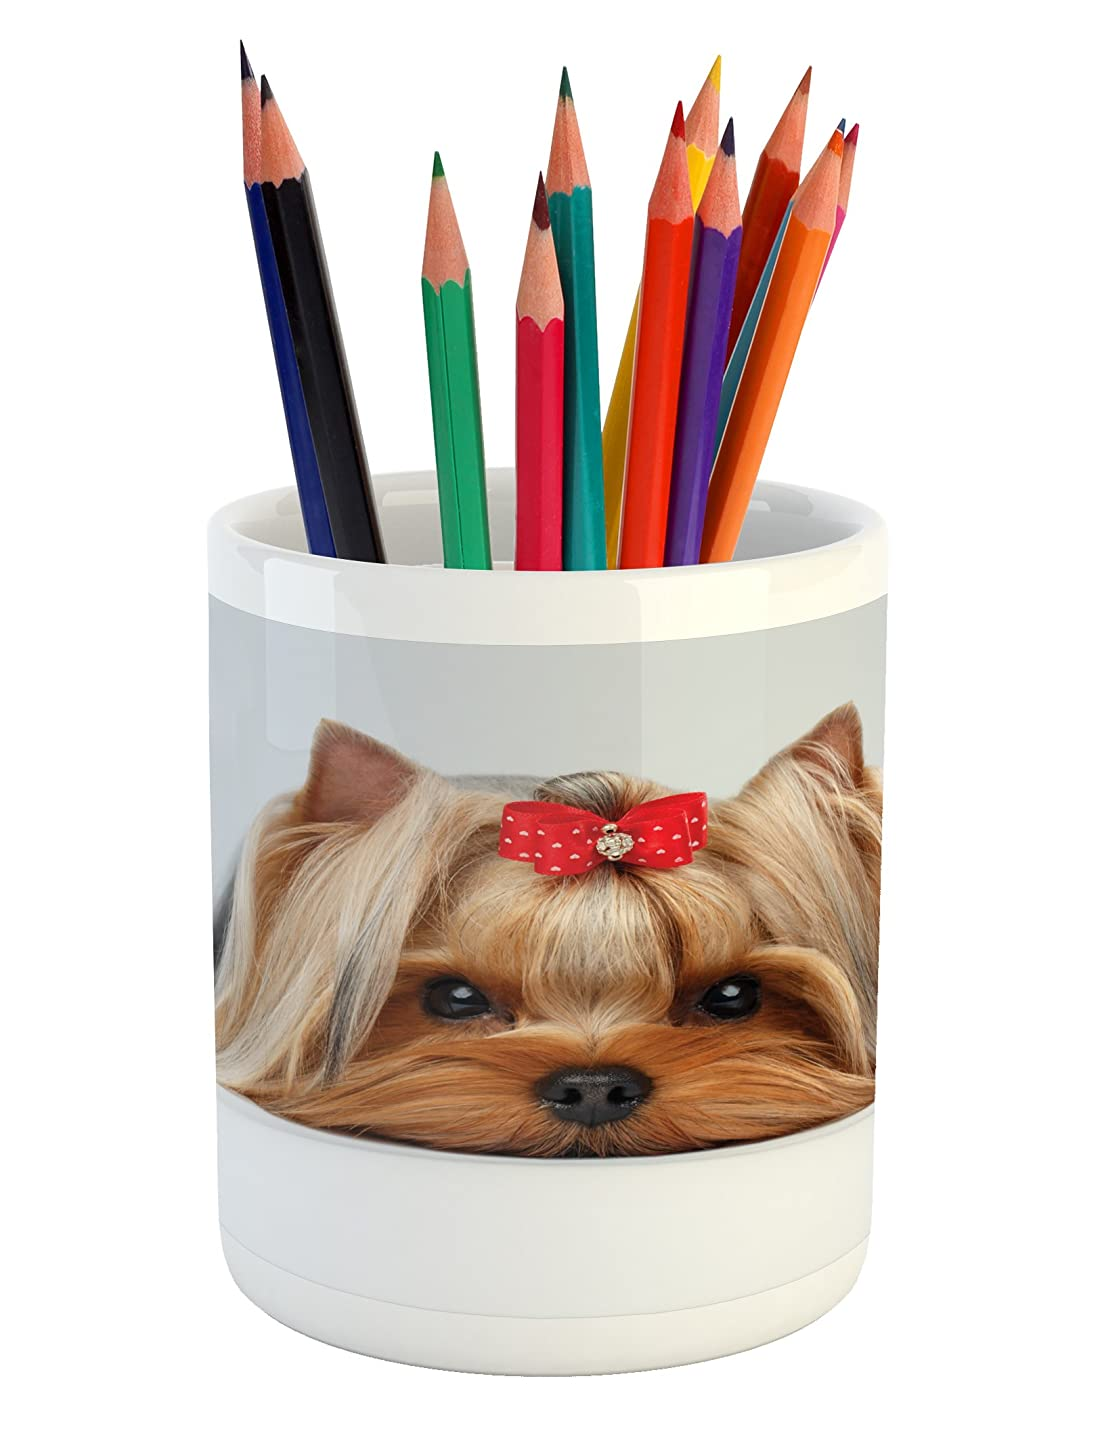 Ambesonne Yorkie Pencil Pen Holder, Lying Yorkshire Terrier with Ribbon Yorkie Love Portrait of a Dog, Printed Ceramic Pencil Pen Holder for Desk Office Accessory, Pale Caramel Sand Brown